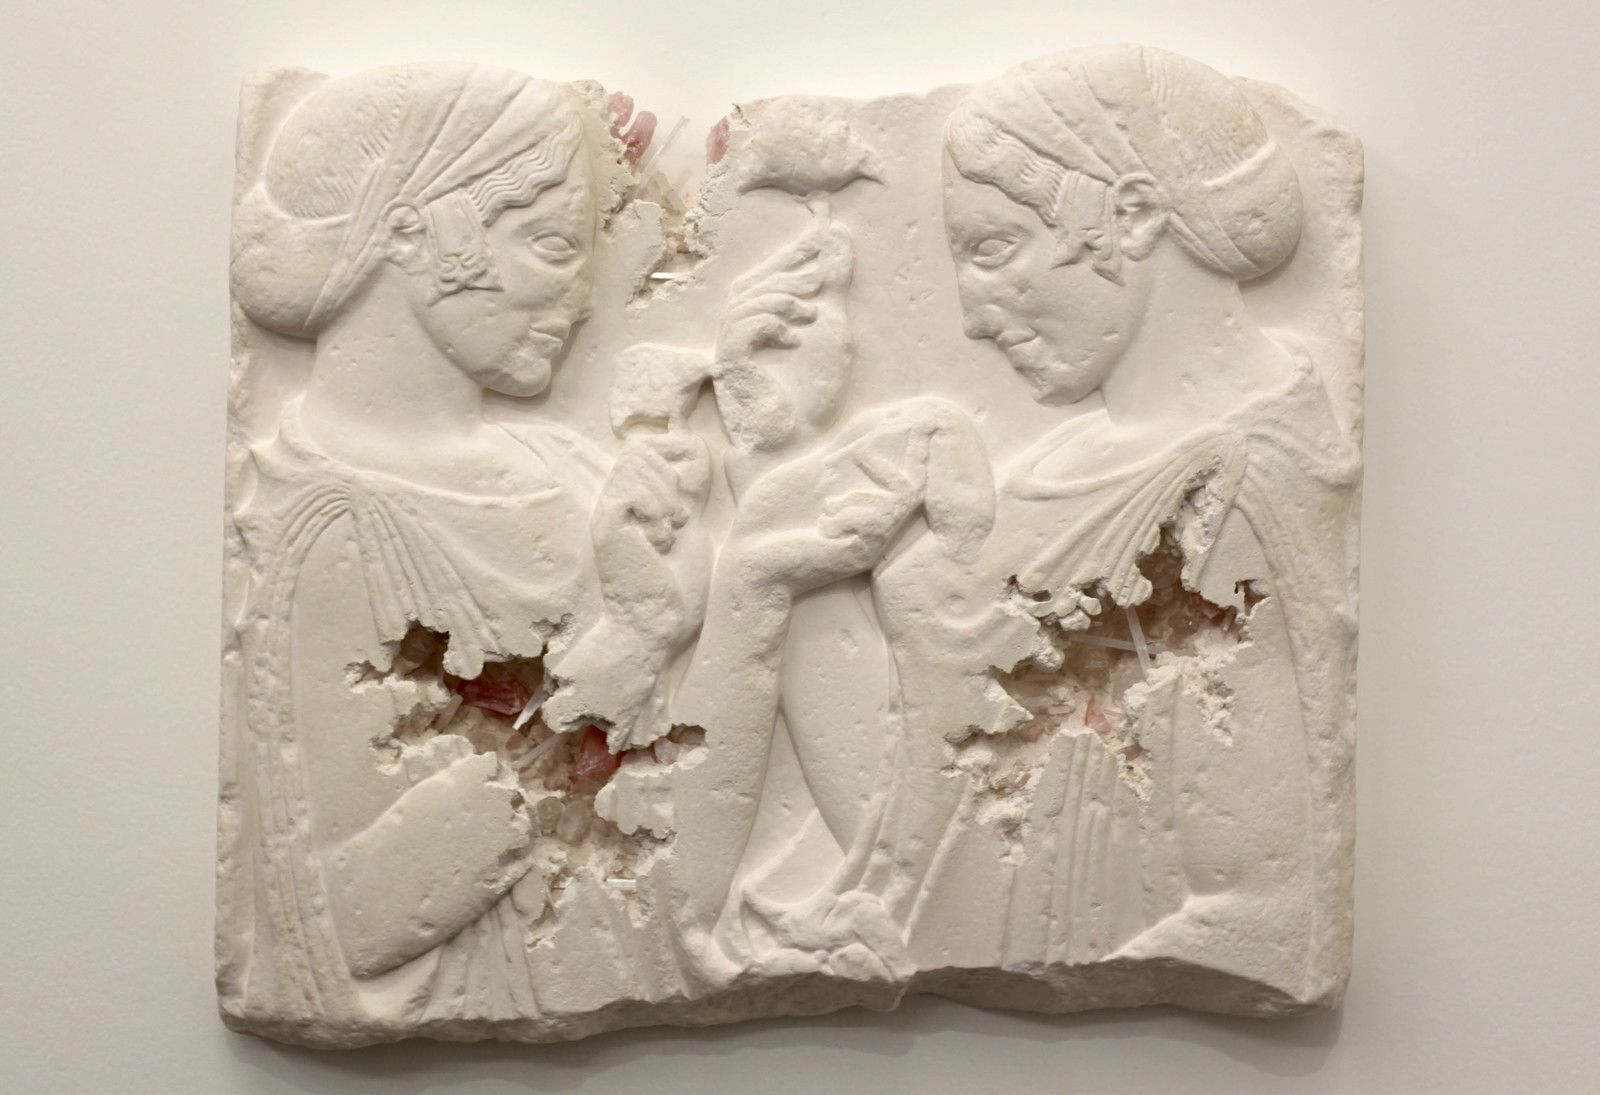 """Rose Quartz Eroded Exaltation à la fleur"", 2019 de Daniel ARSHAM - Courtesy de l'artiste et la galerie Perrotin © Photo Éric Simon"